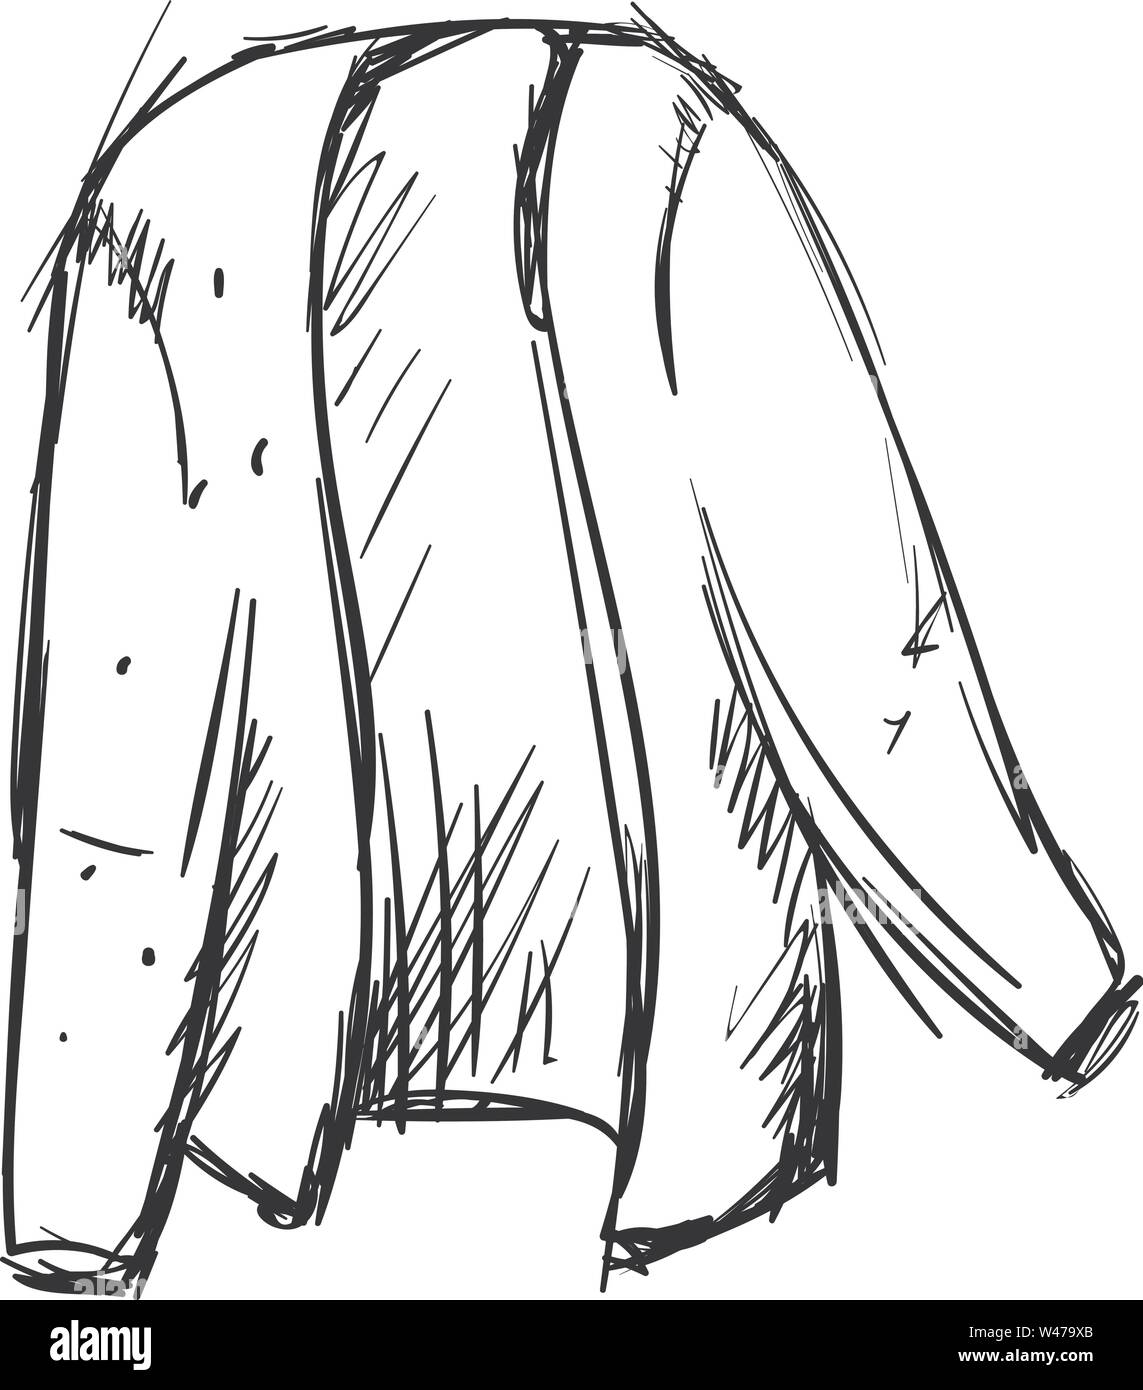 Cardigan drawing, illustration, vector on white background. - Stock Image